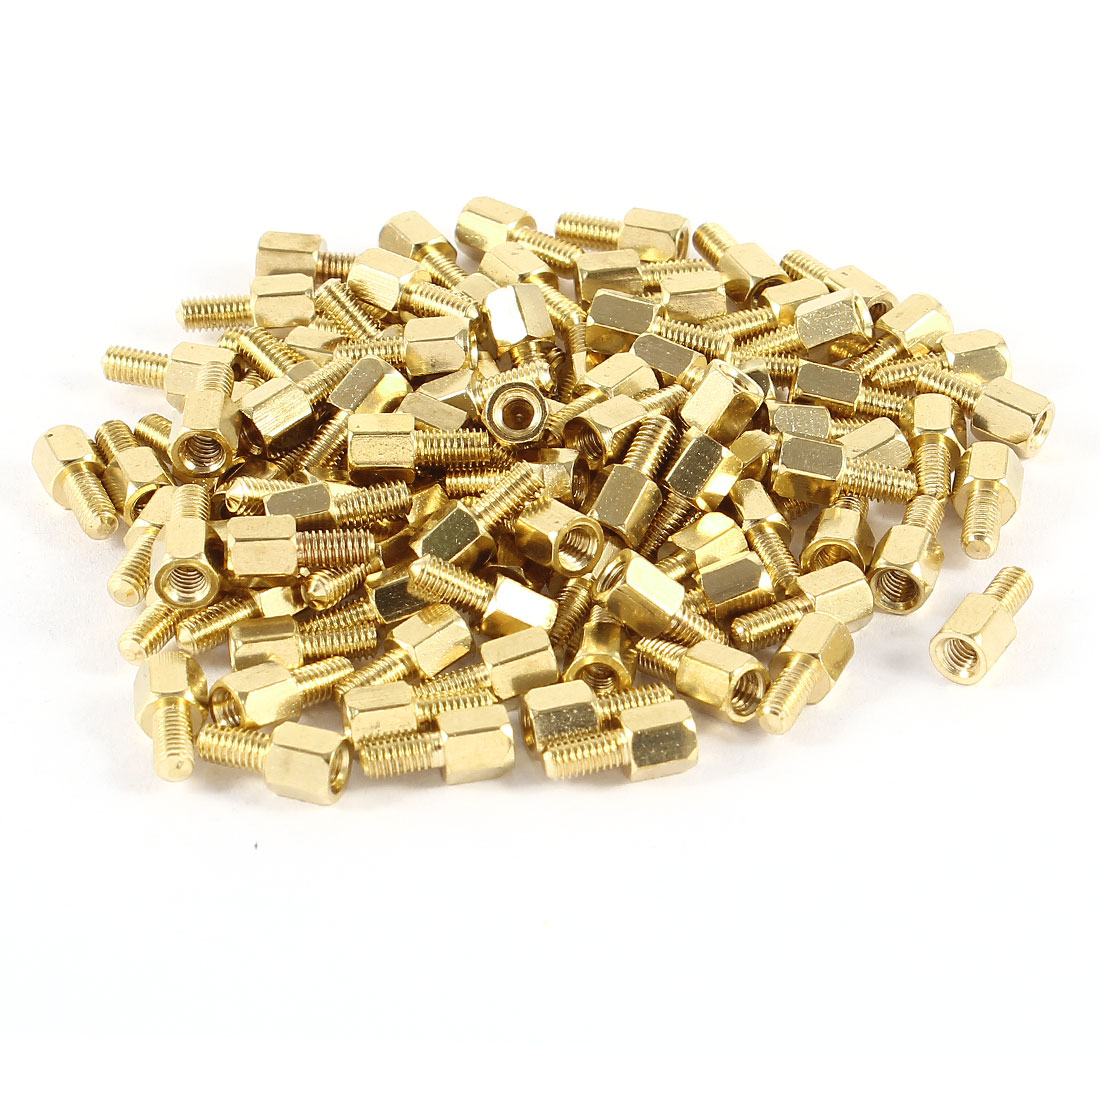 100pcs Brass Hex Standoff Spacer M3 x 5+6mm Female to Male